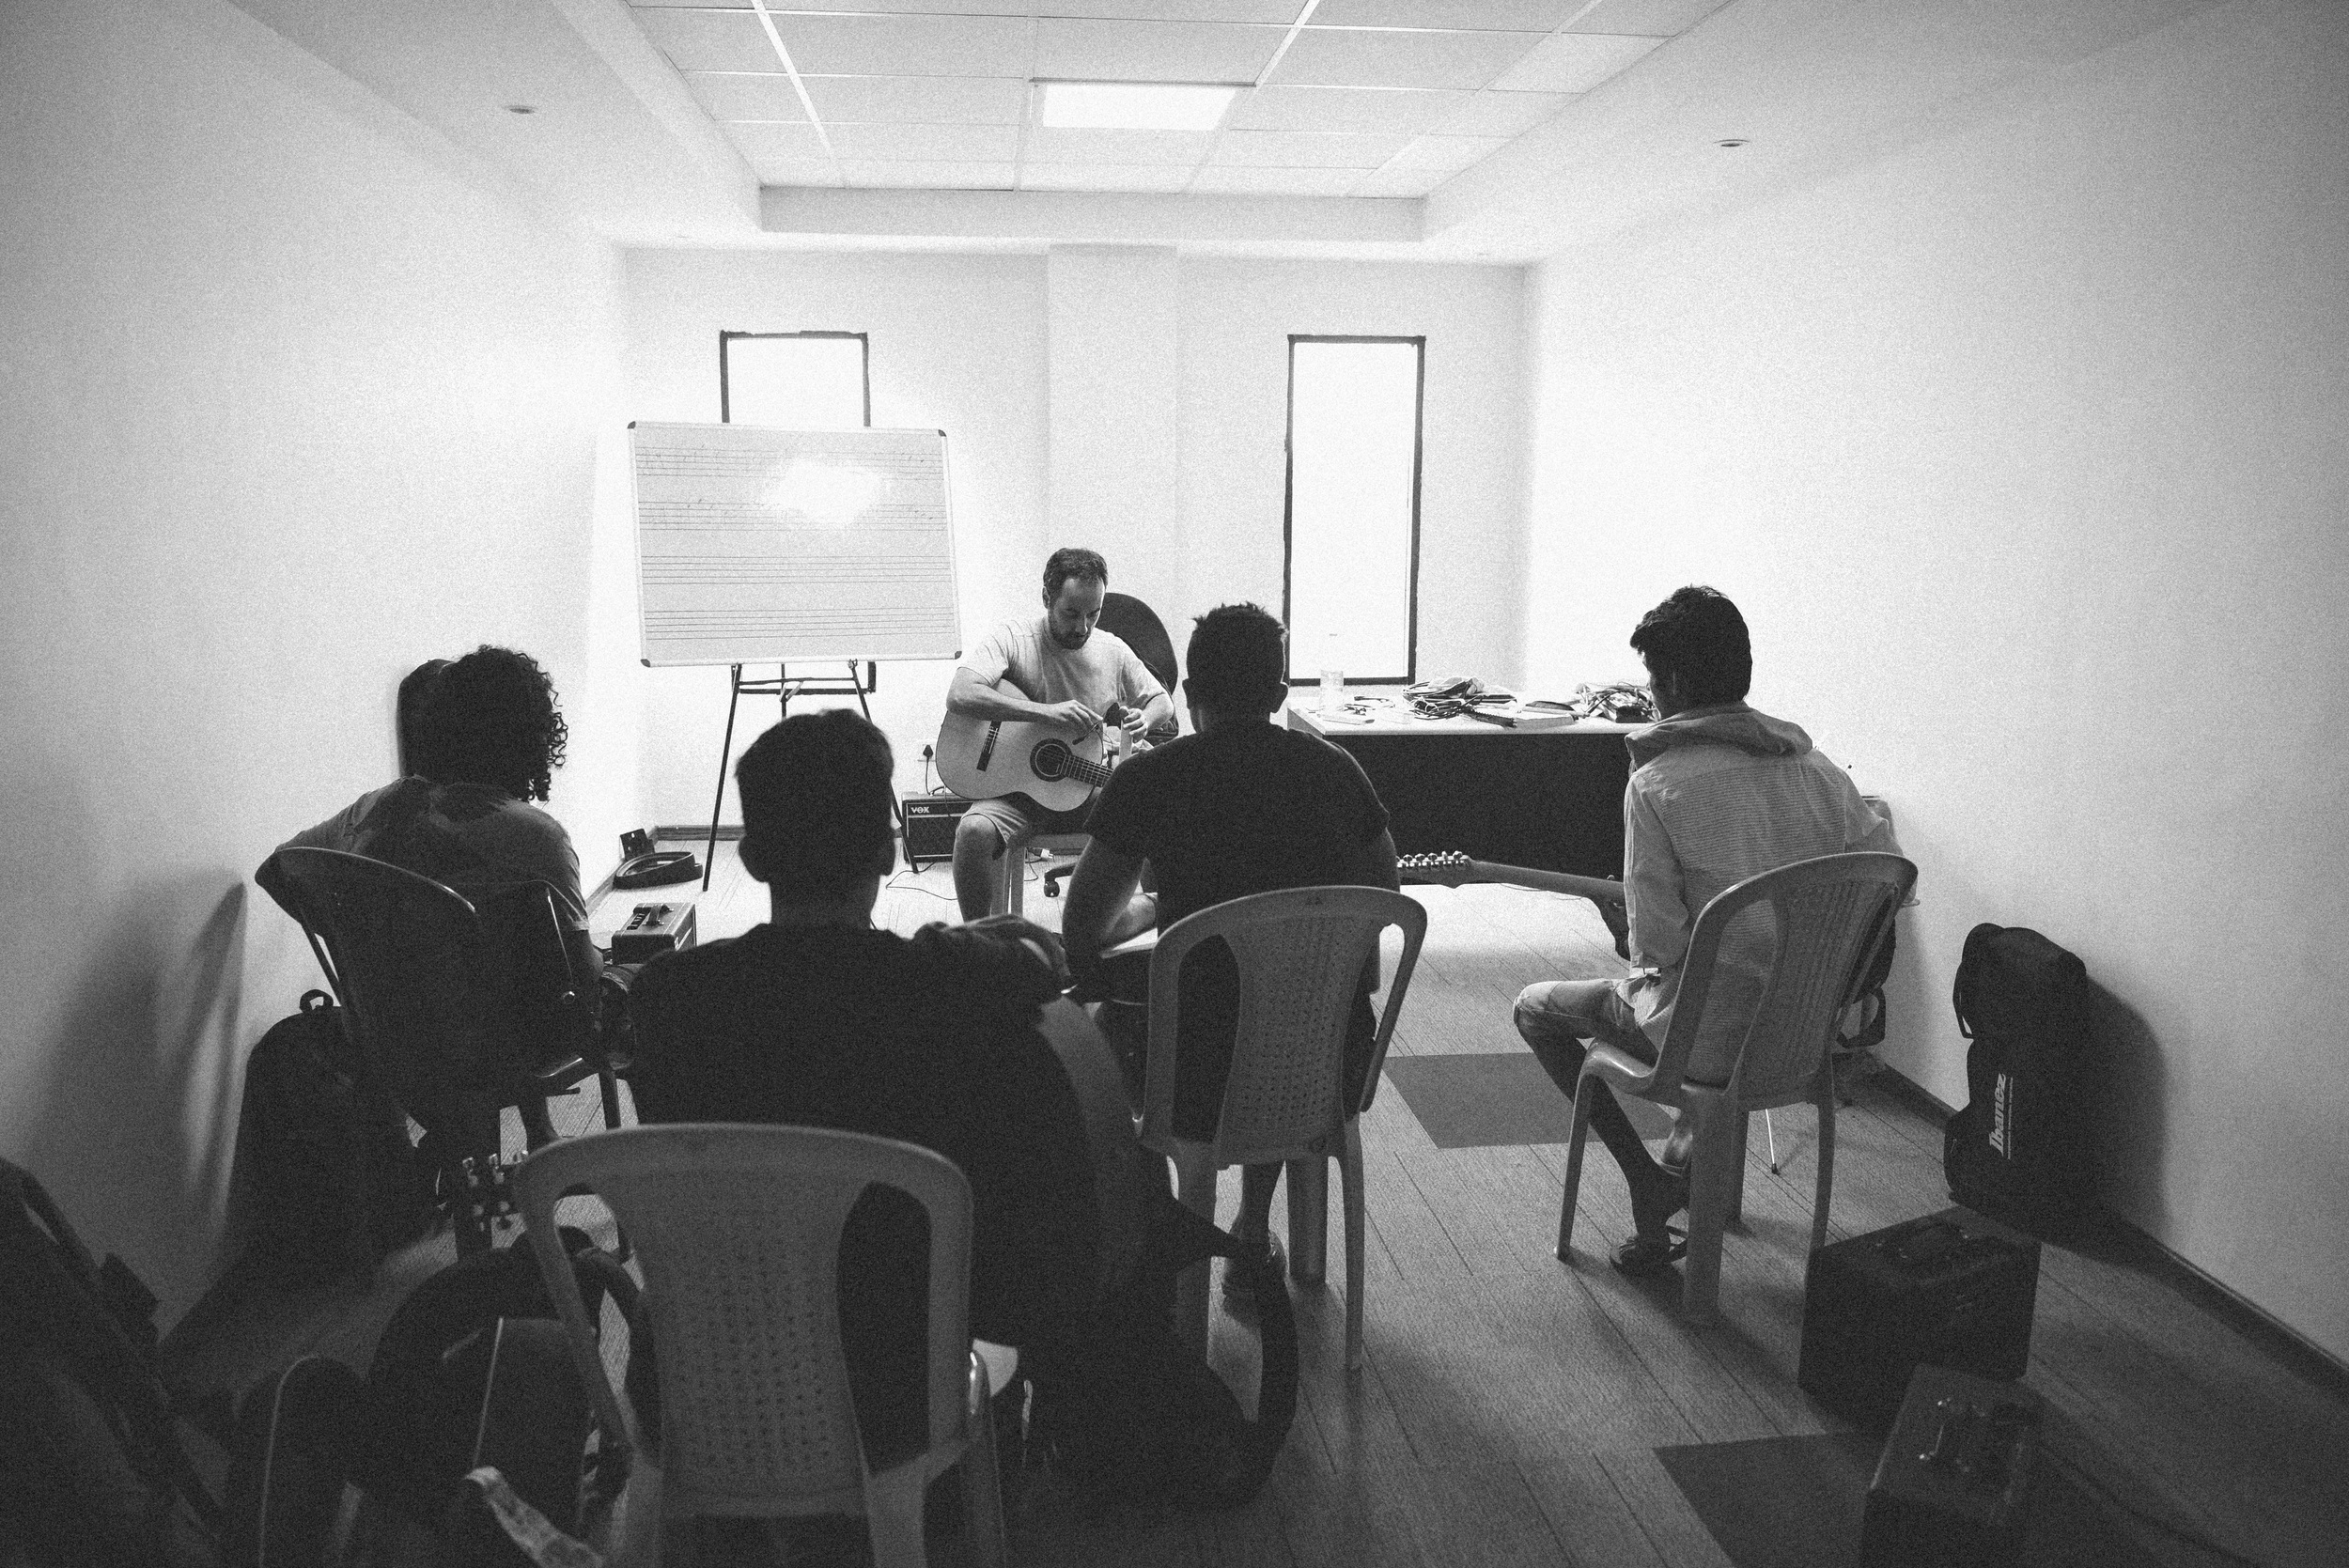 a-day-at-music-school-class